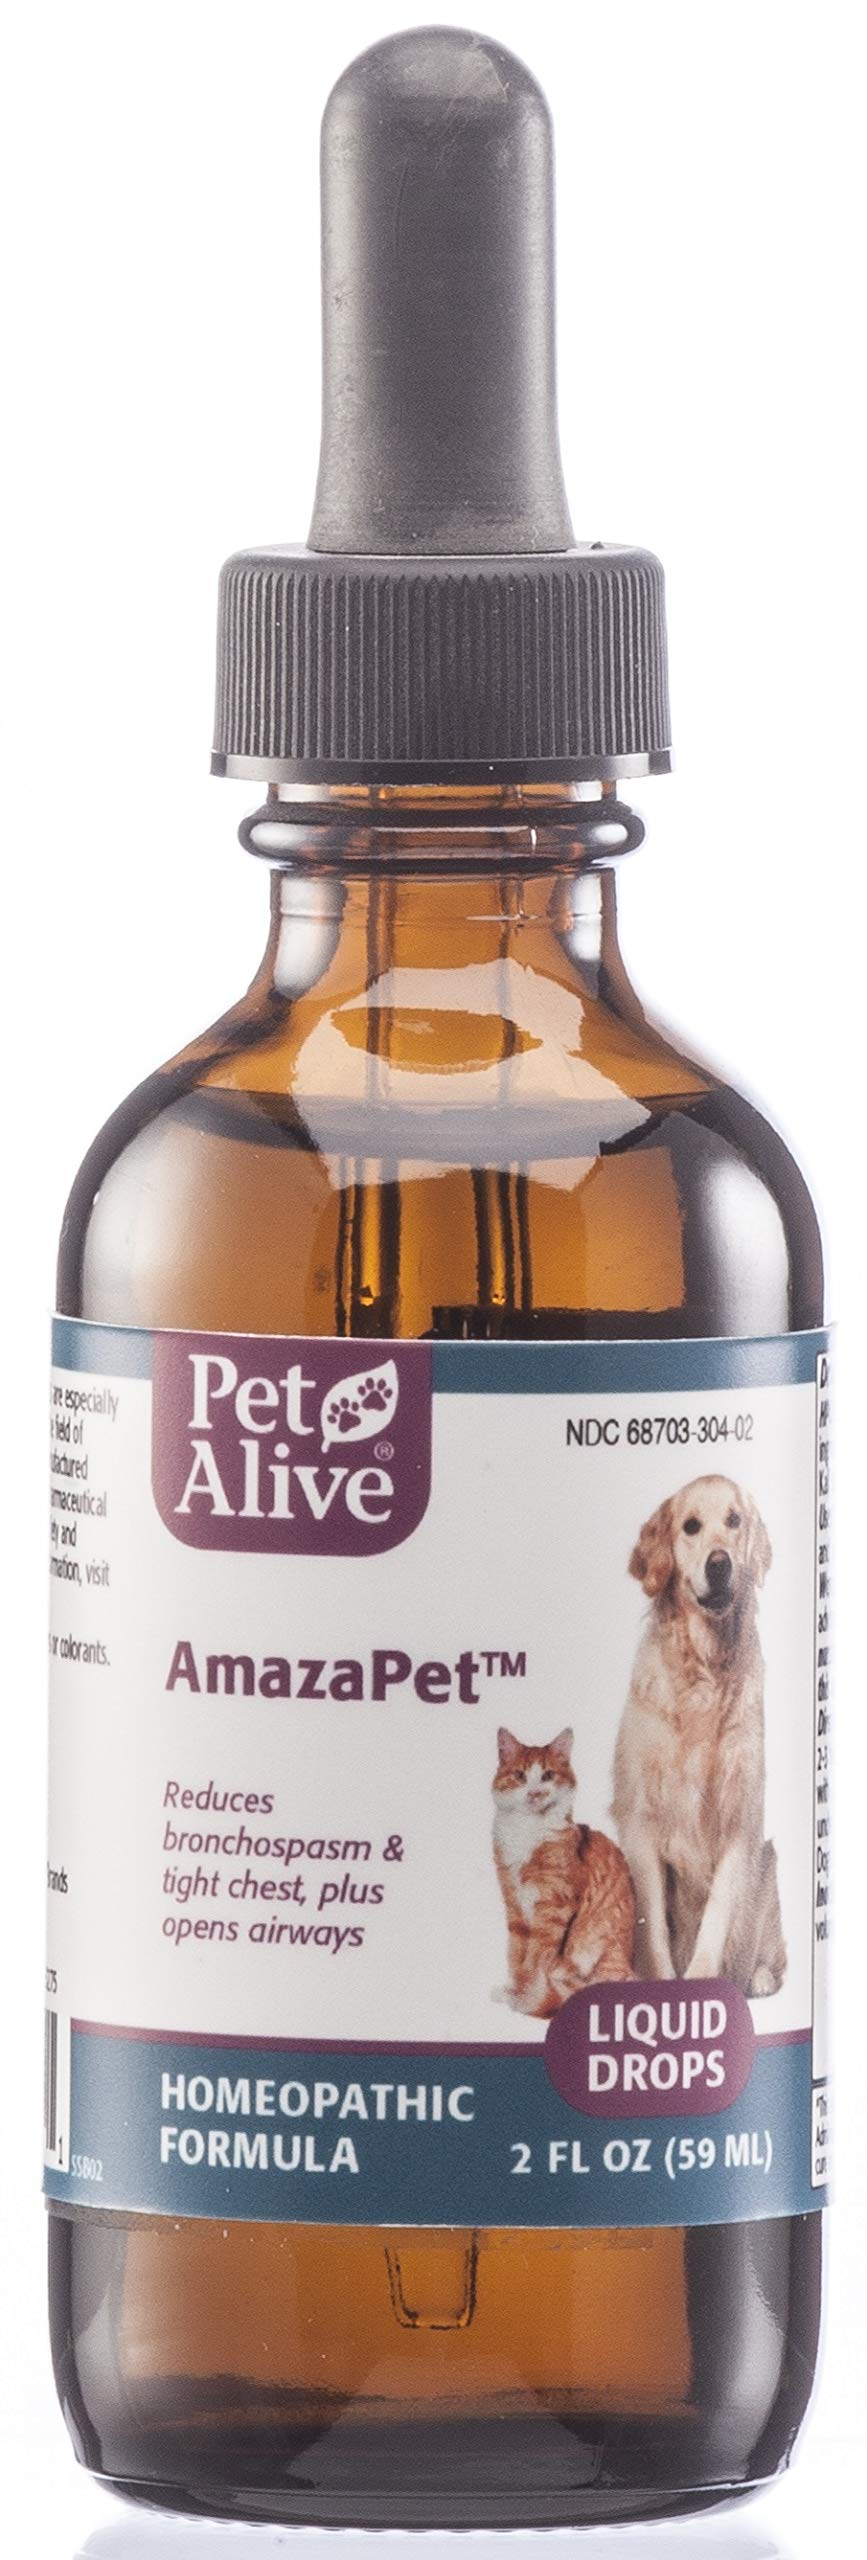 PetAlive AmazaPet Liquid - A Homeopathic Remedy for Easier Breathing, Improved Respiratory Function and Healthy Lungs by PetAlive